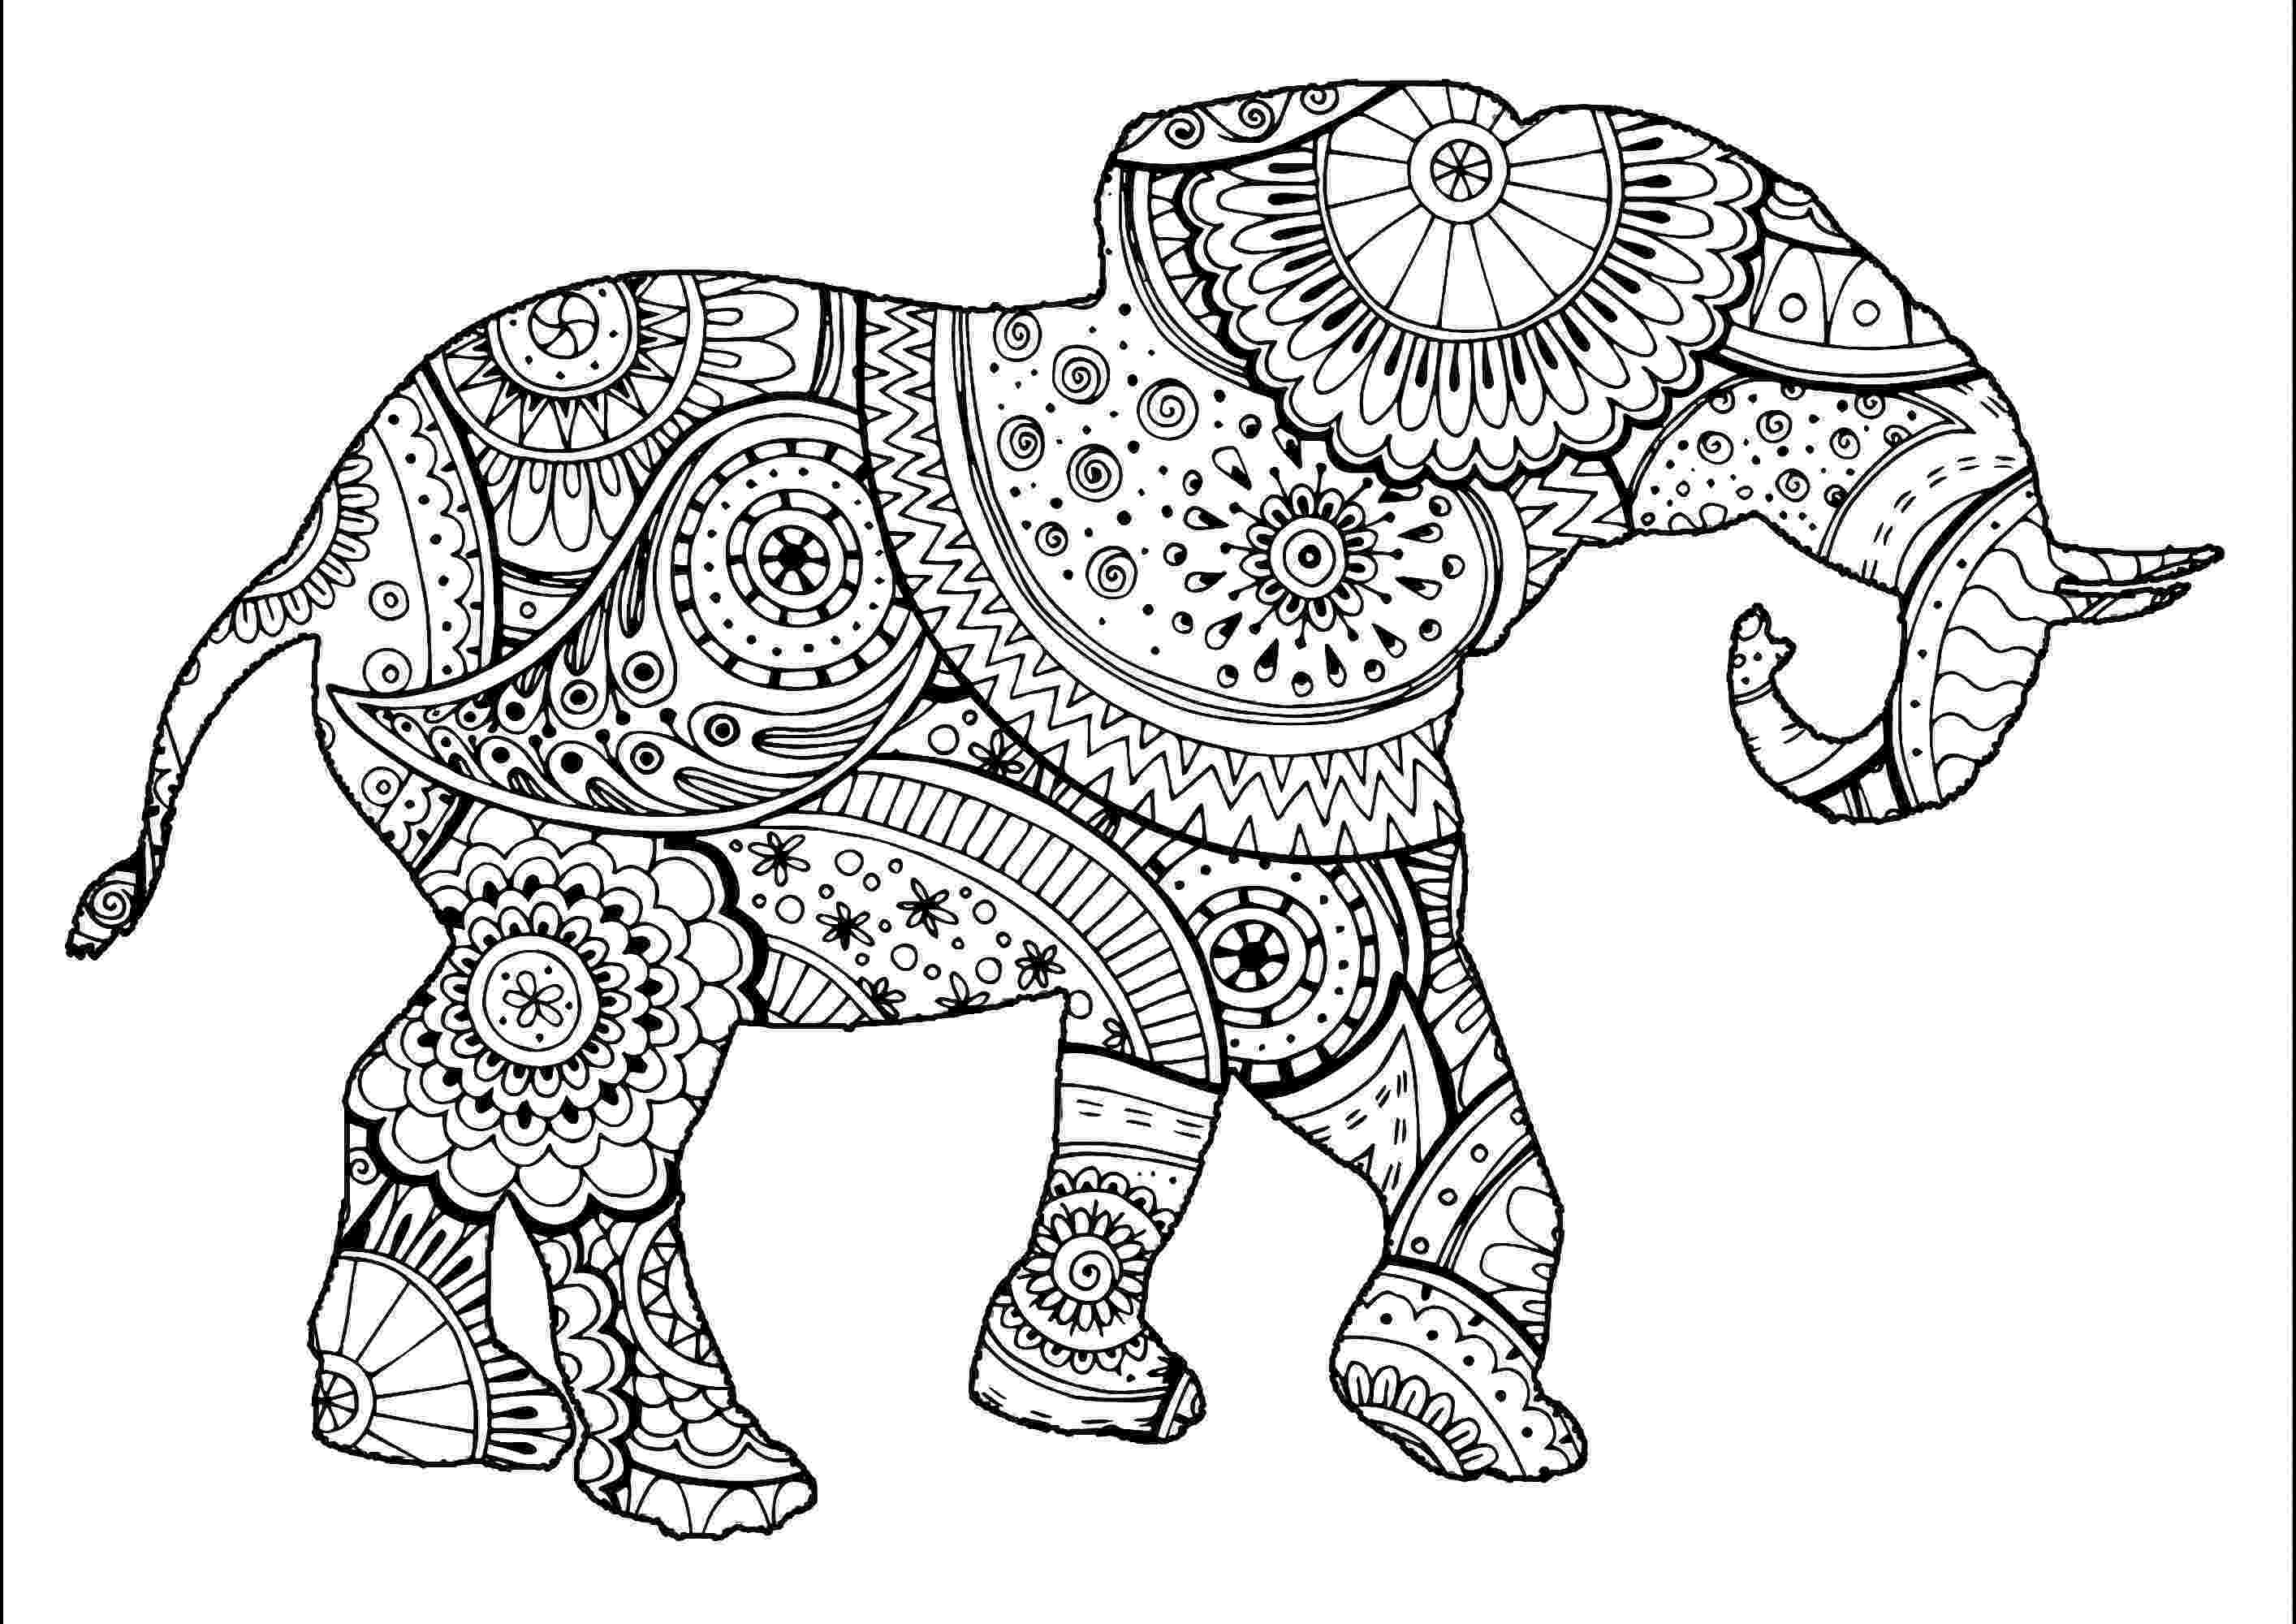 colouring sheets pattern animals cat stress relieving designs patterns adult by sheets colouring pattern animals